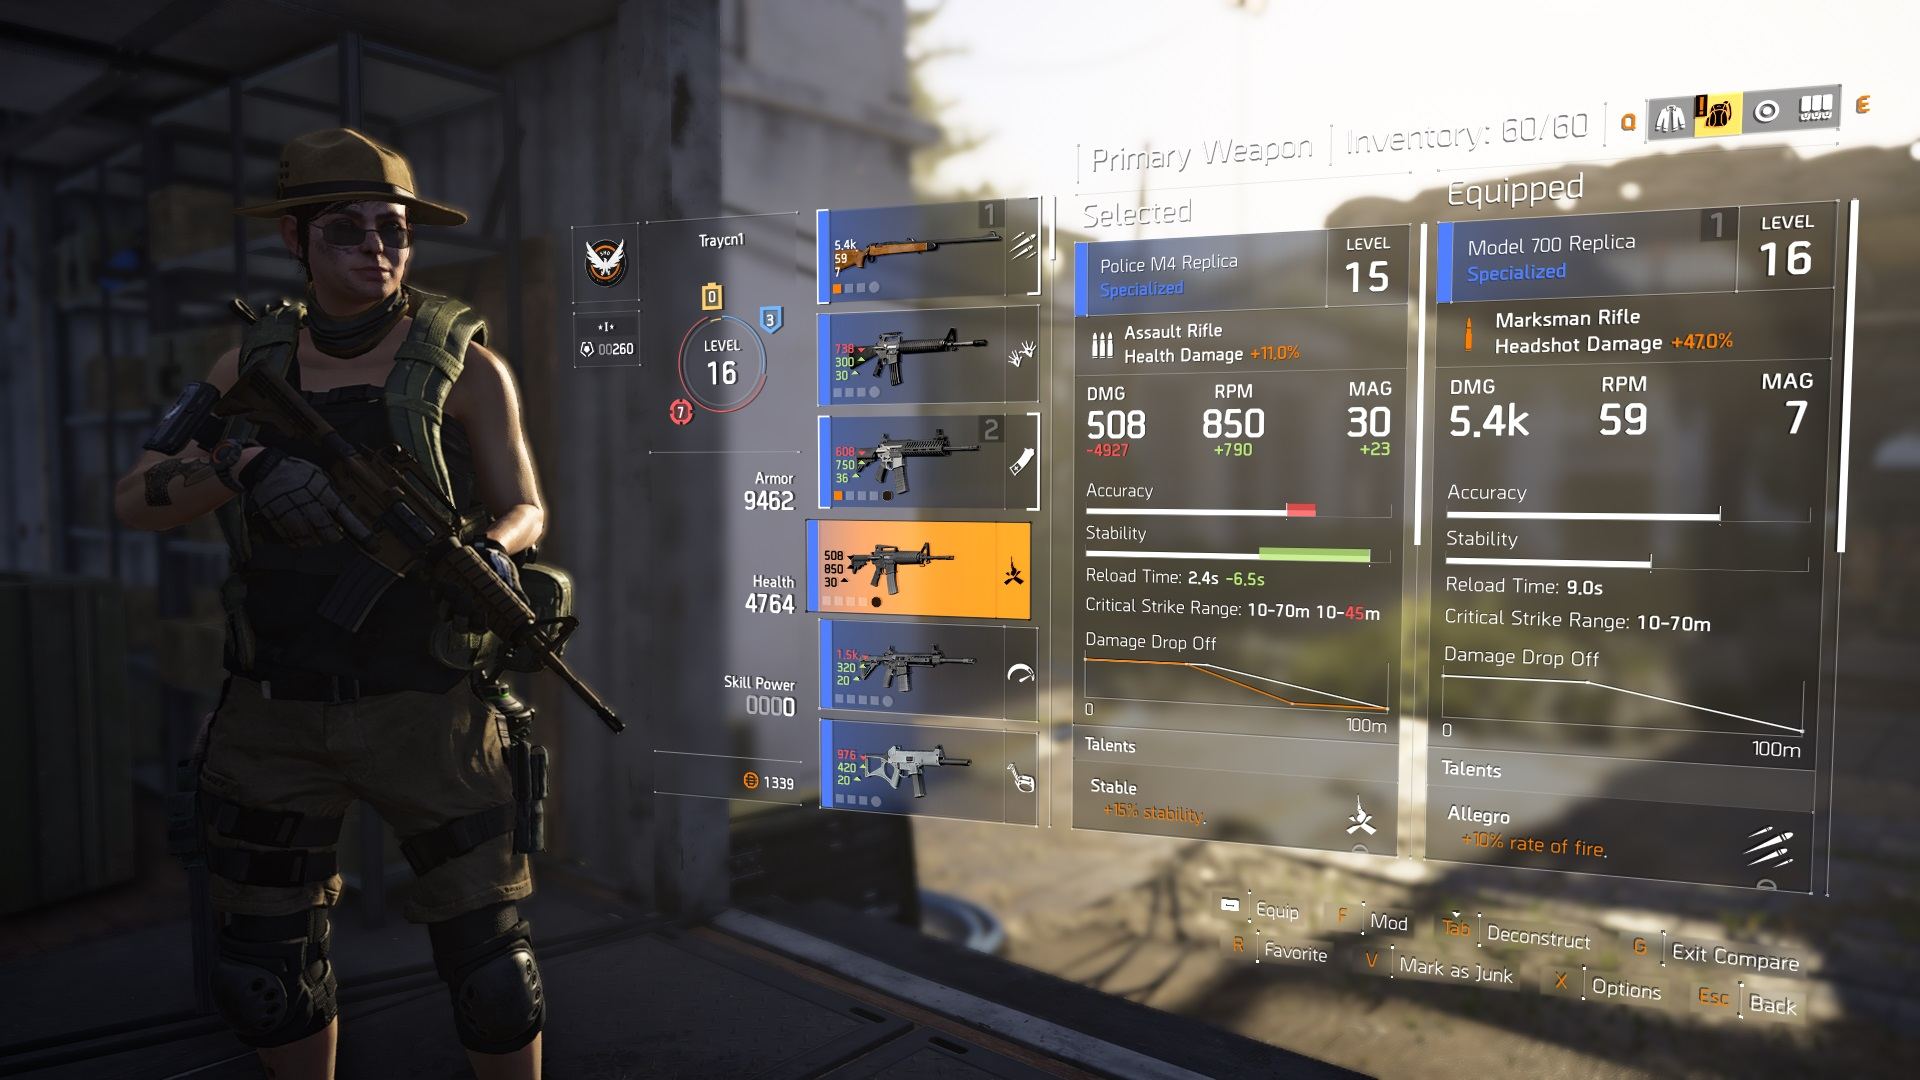 The Division 2 Weapon Drop Off